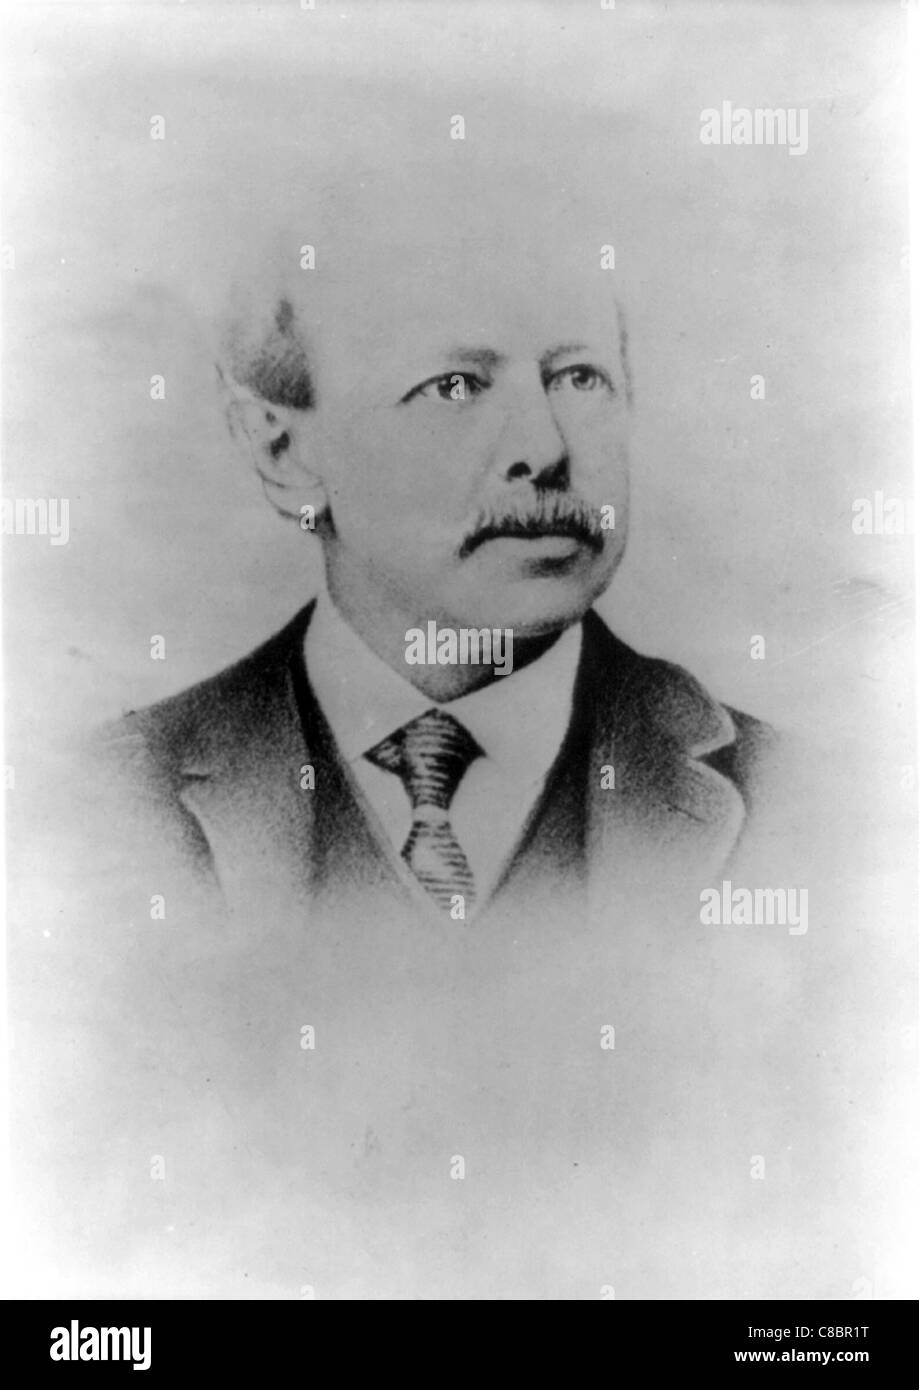 Jr., Horatio Alger 19th-century American author Photo Stock